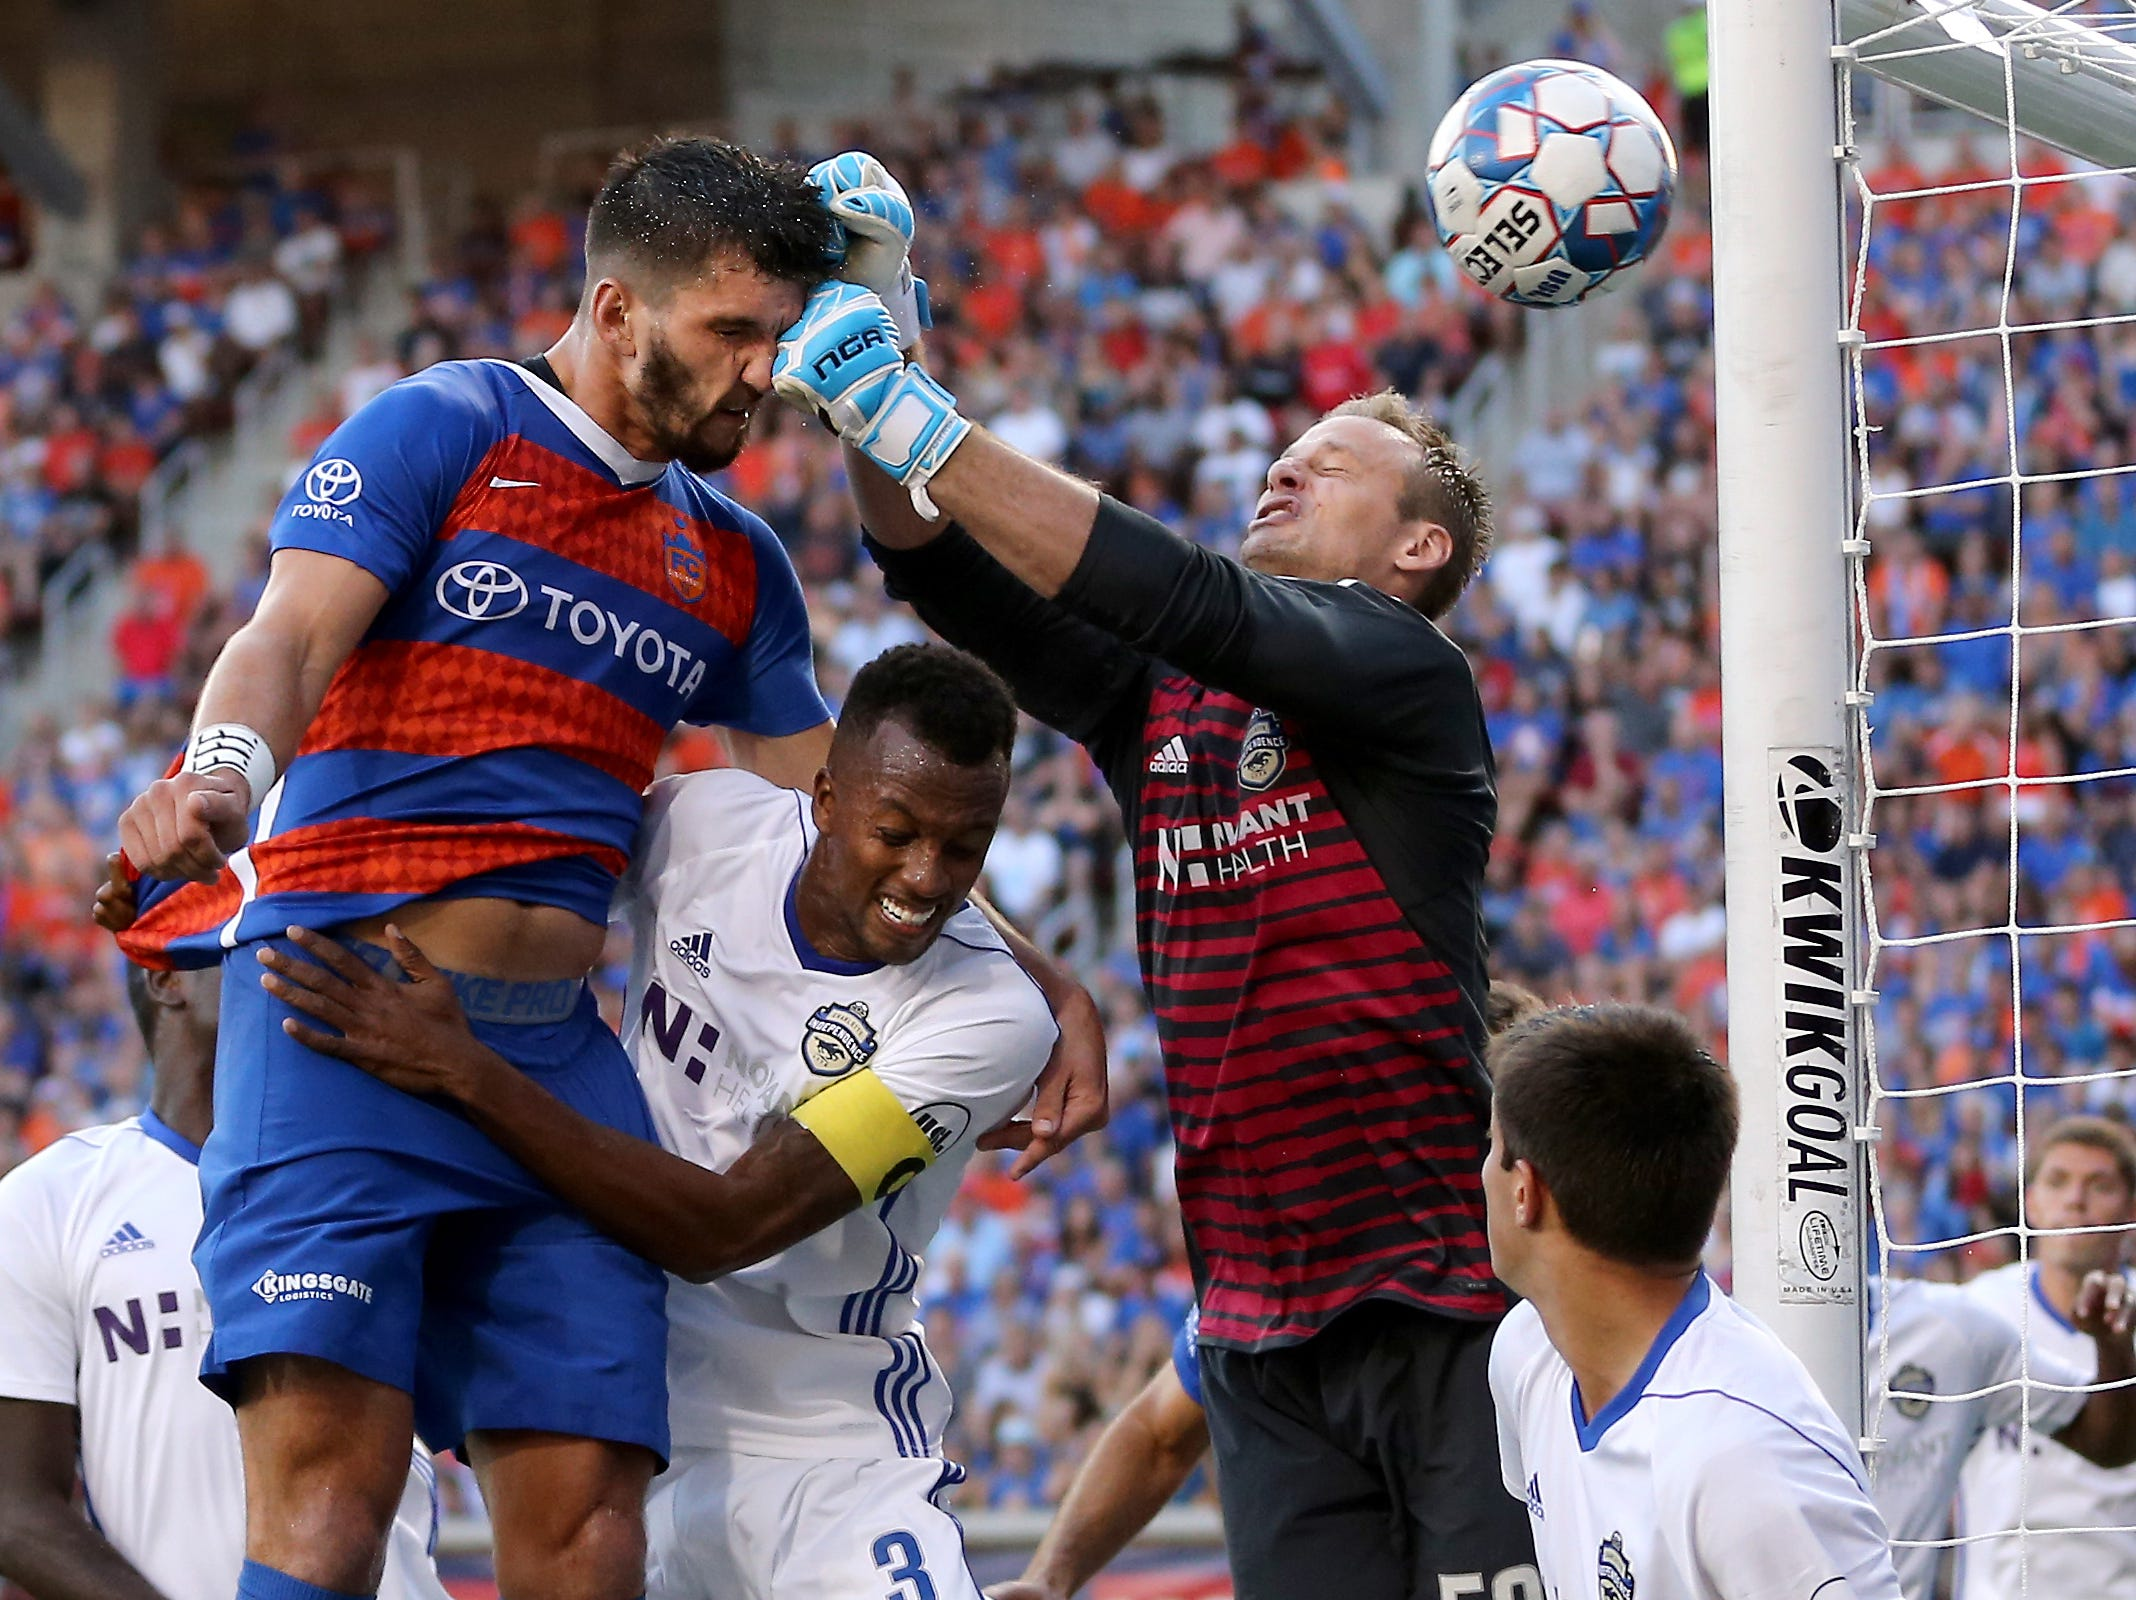 I mainly cover Cincinnati-area sports. Sports action photos are common, but unique images that capture peak action and difficulty of competition are difficult to capture and anticipate. In this frame, FC Cincinnati defender Forrest Lasso is punched in the face by Charlotte Independence goalkeeper Andrew Dykstra (50) on an attempt on goal during a game, Wednesday, July 18, 2018, at Nippert Stadium.